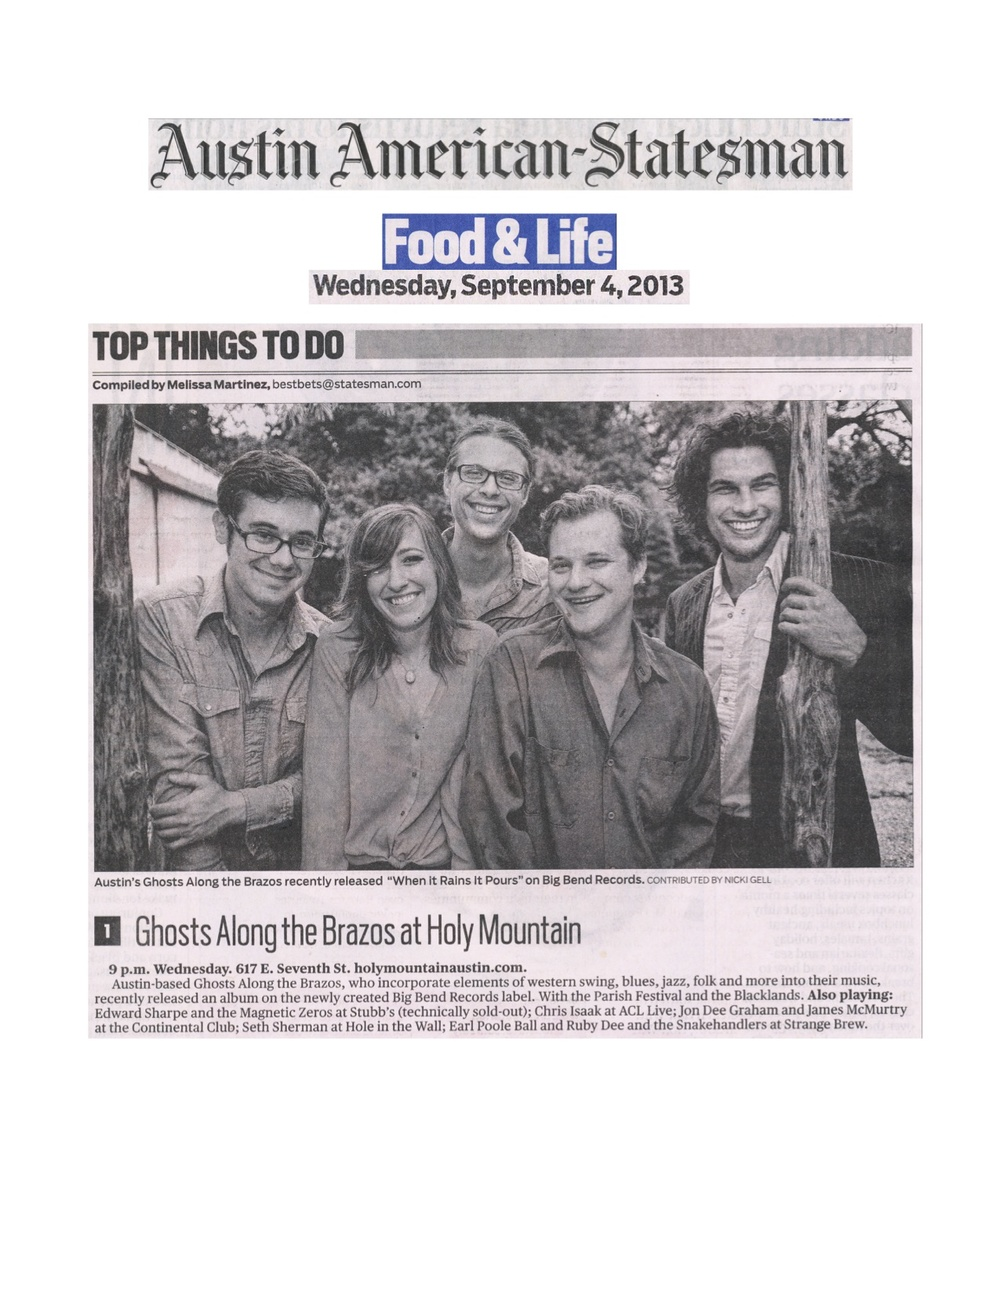 Big Bend Records_Ghosts Along The Brazos_Austin American-Statesman_Sept. 4, 2013 jpeg.jpg